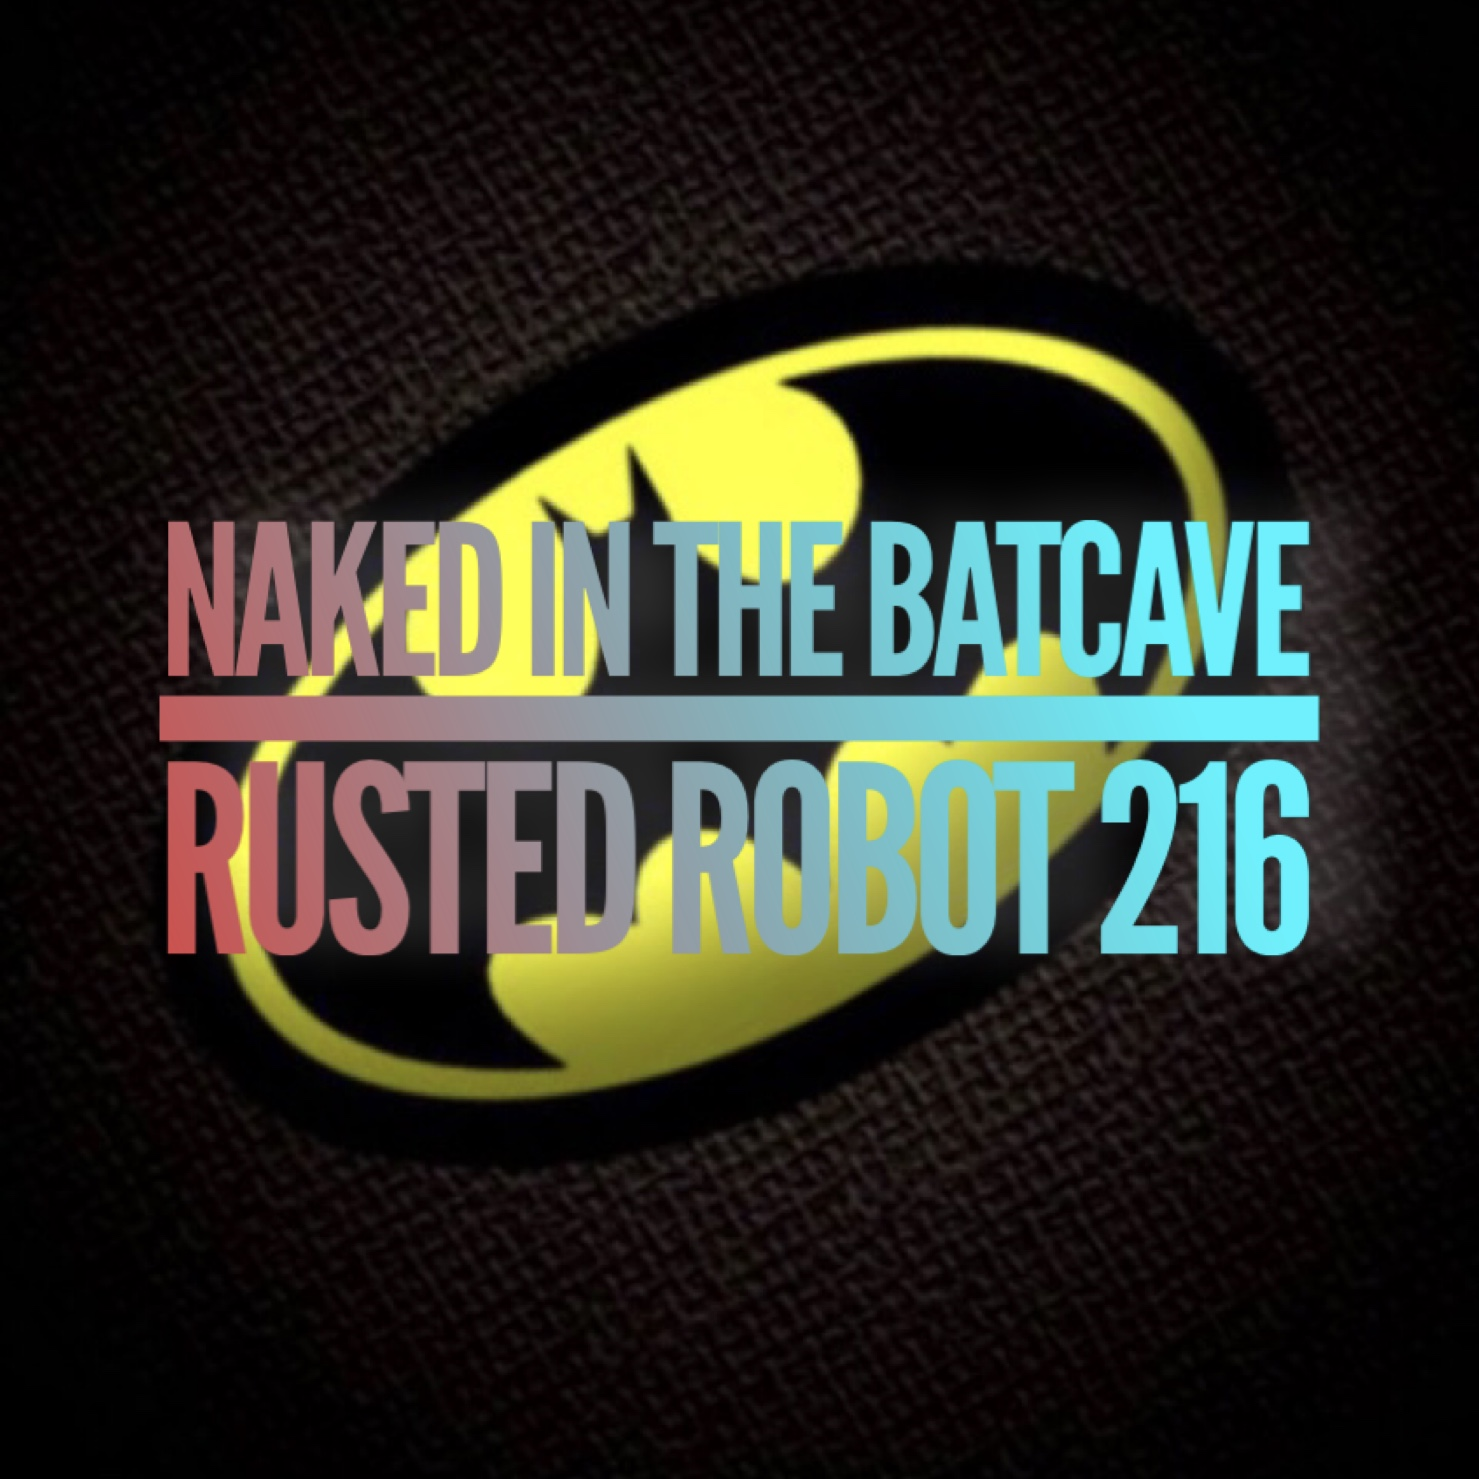 216: Naked In The Batcave